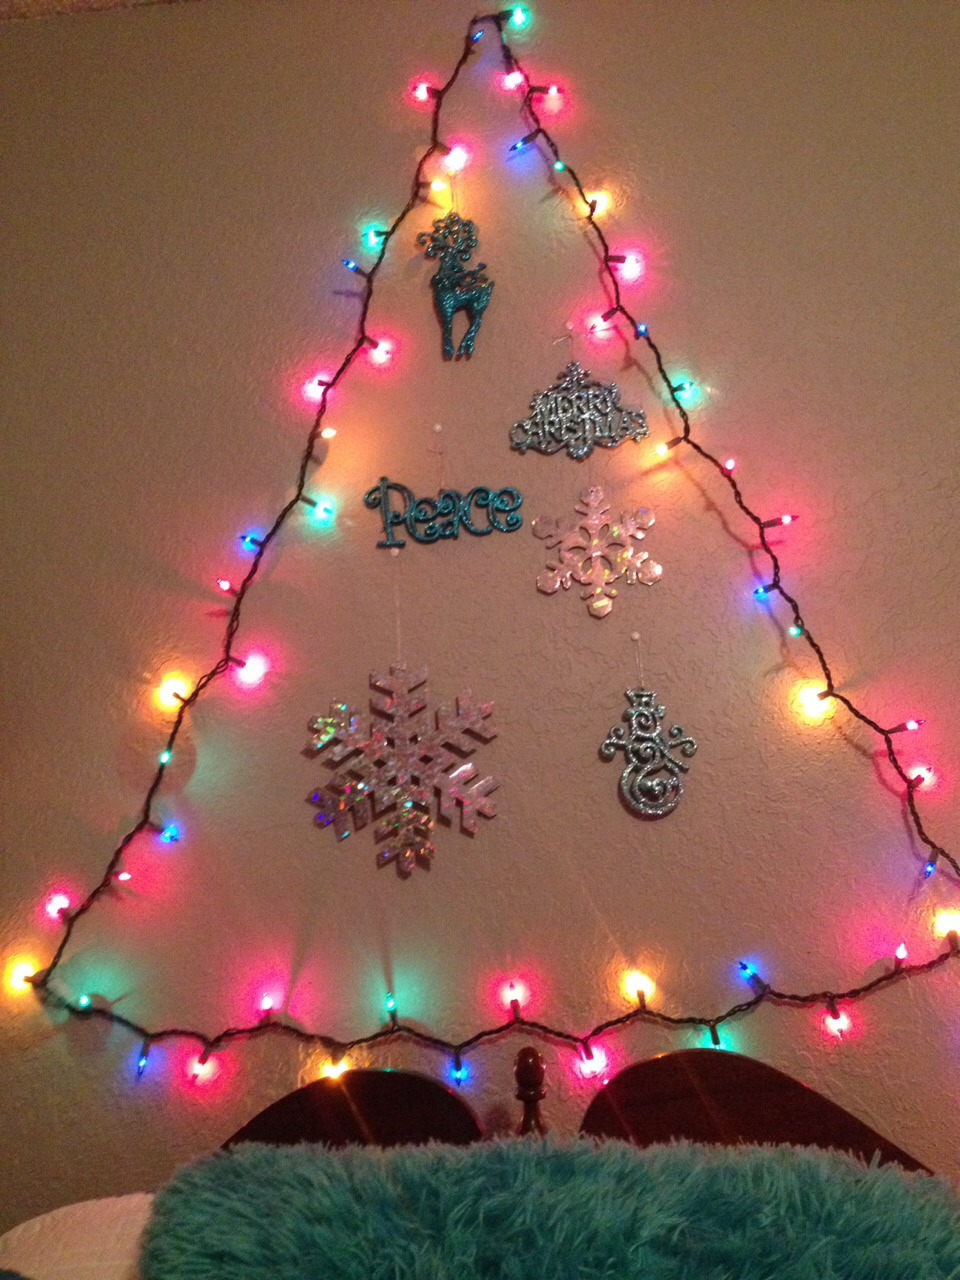 For A Cute Little Way To Dress Up Your Room For Christmas